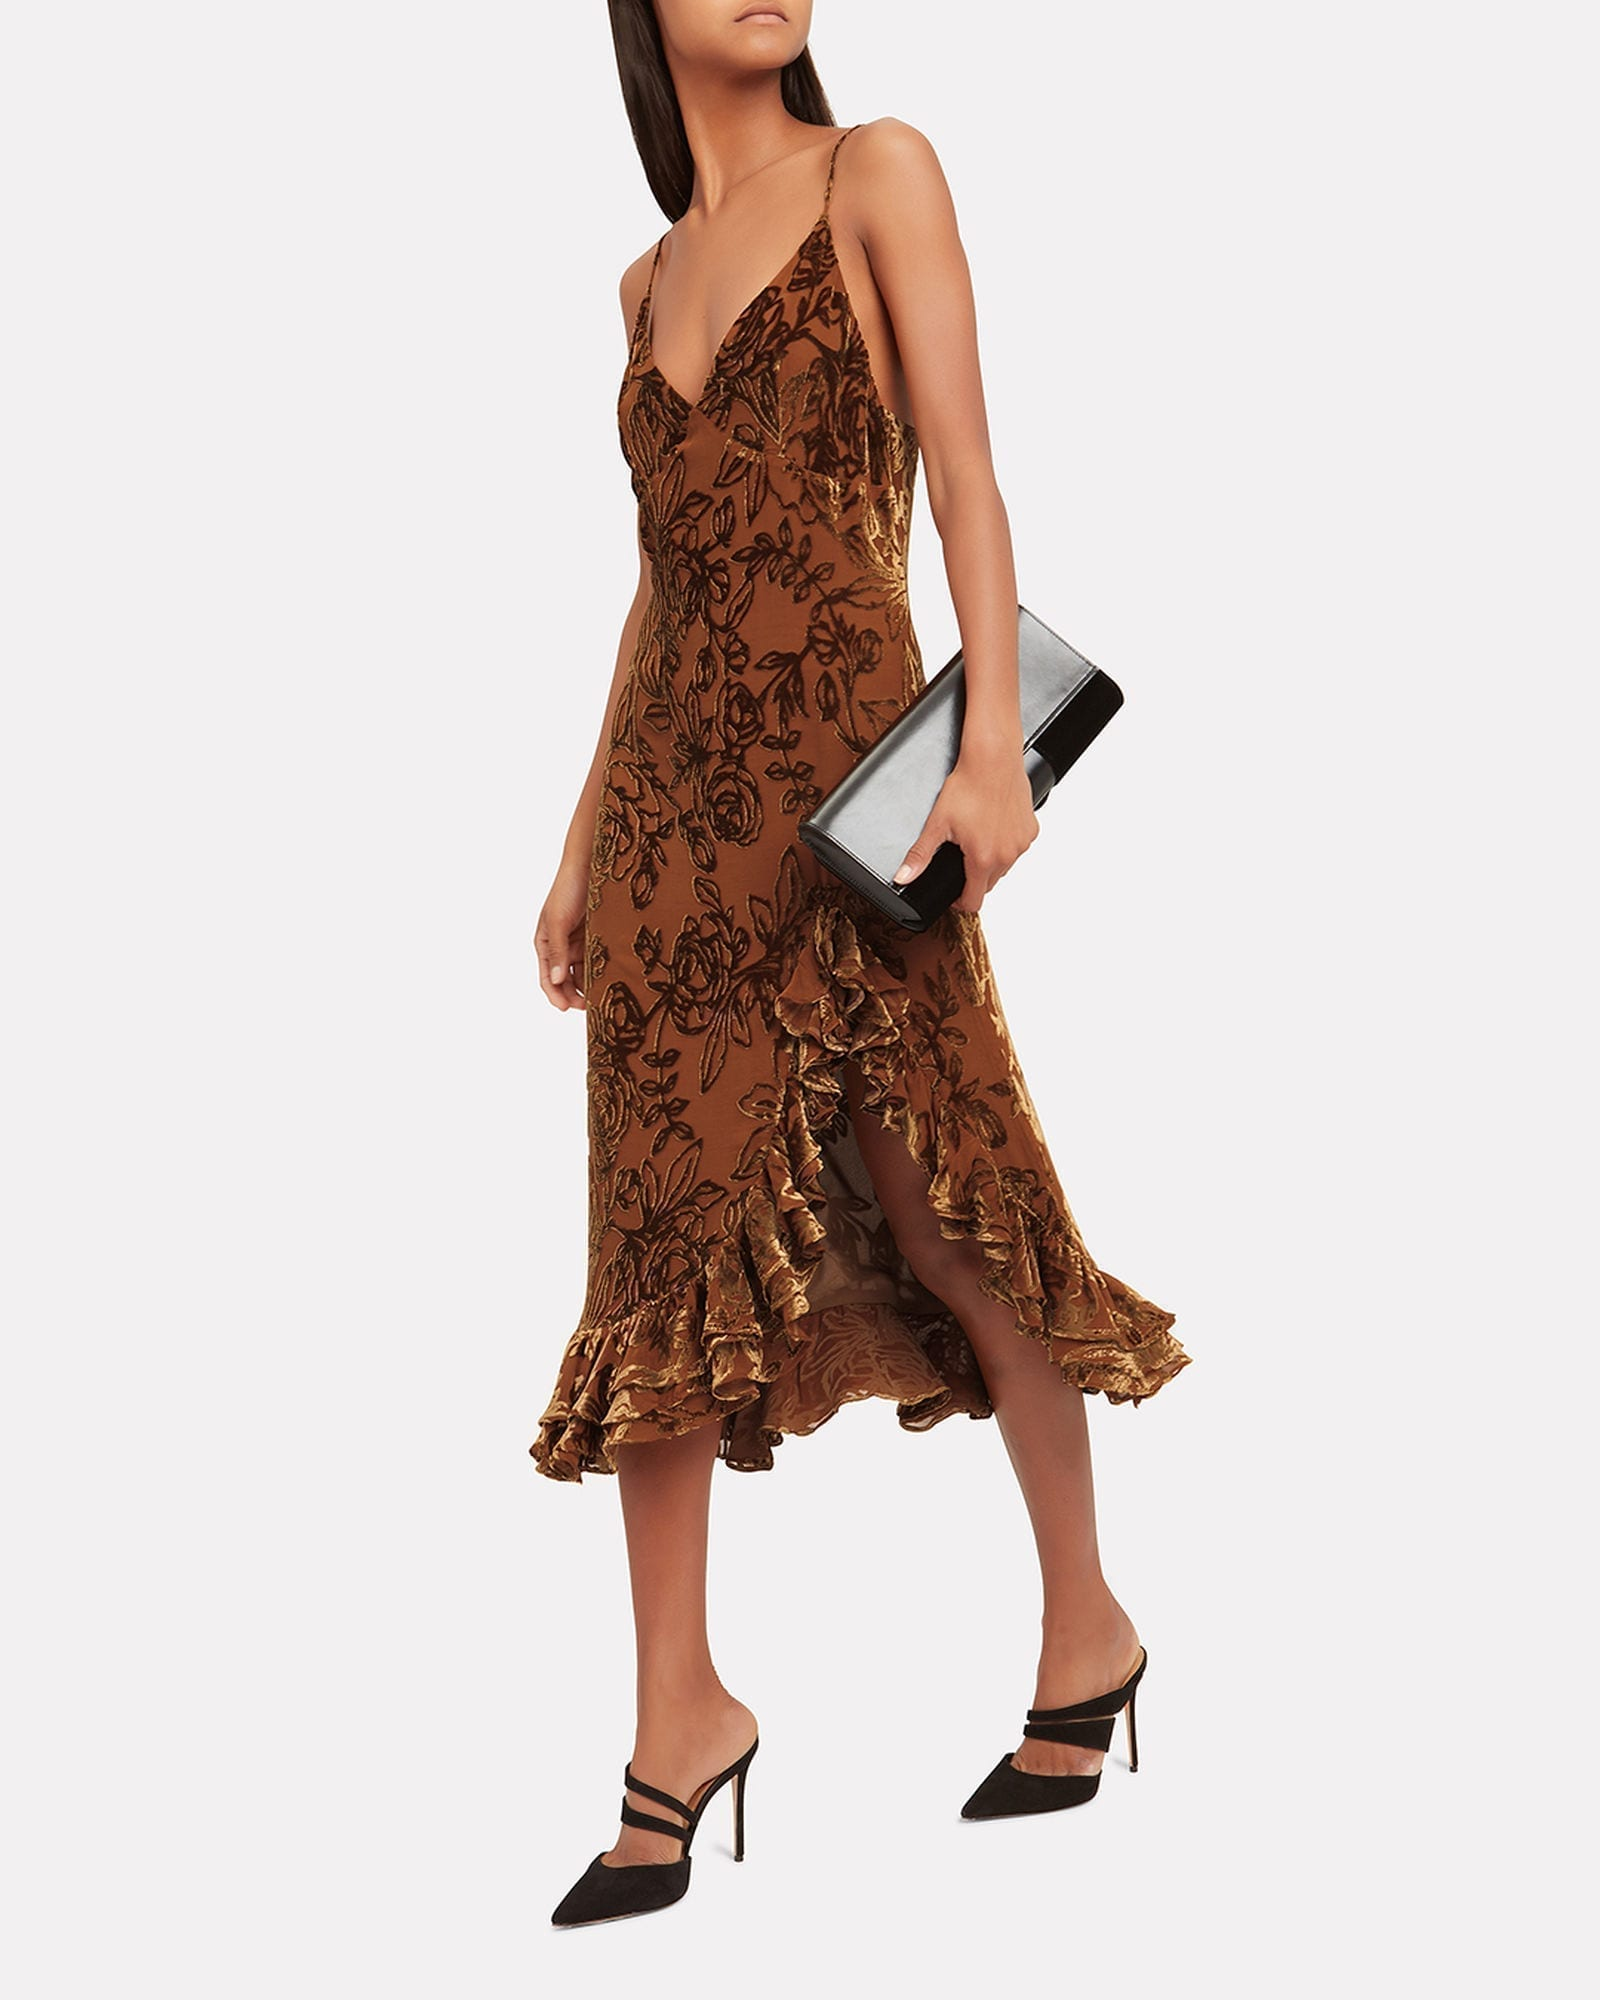 CAROLINE CONSTAS Elvira Velvet Slip Brown Dress